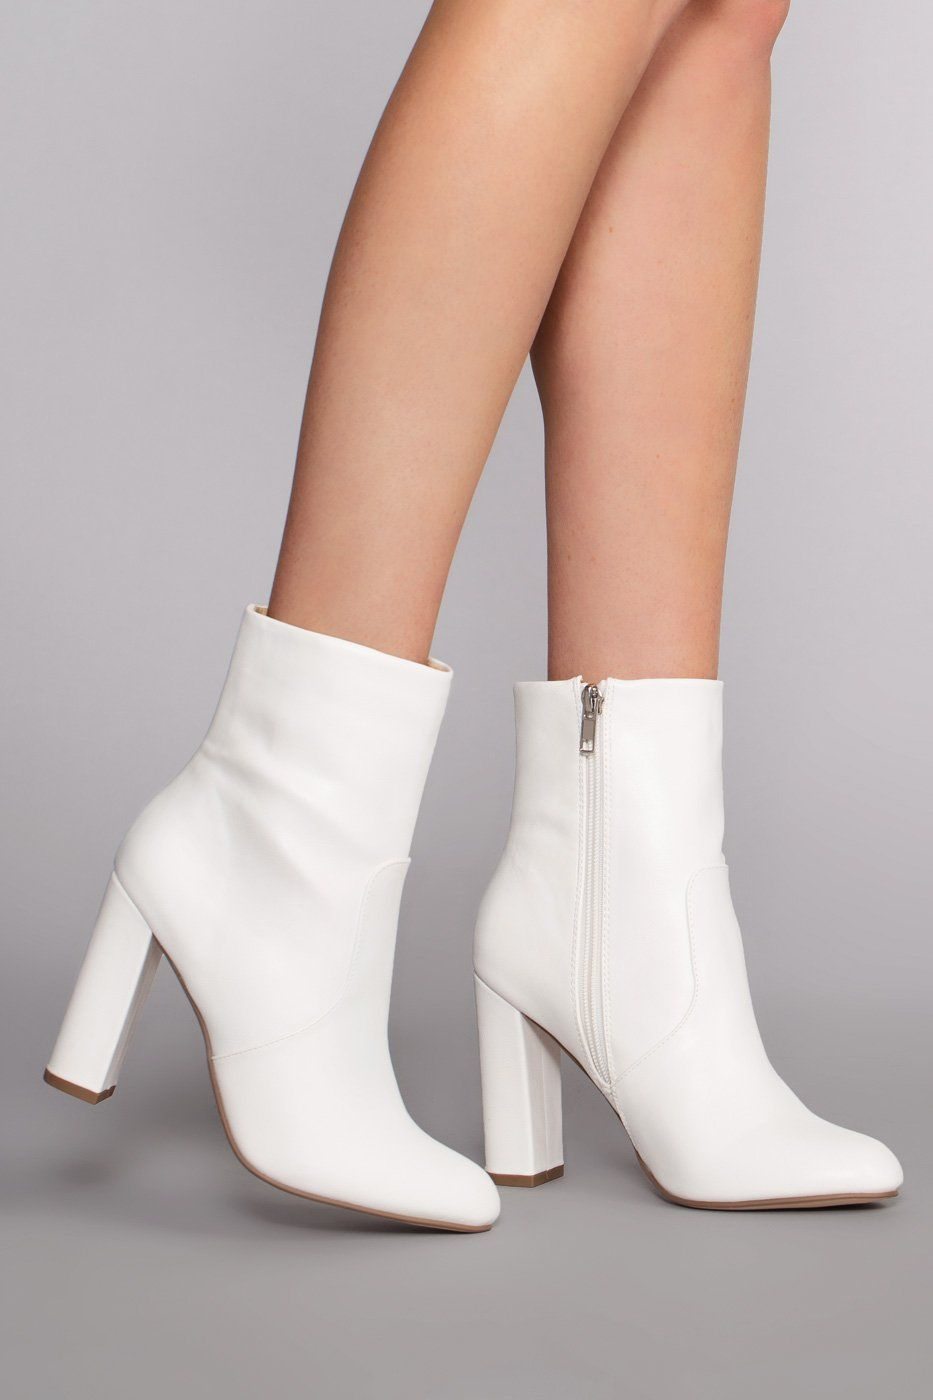 f6c3737988 Twiggy Booties - White | Need More Shoes in 2019 | Shoe boots, White ...